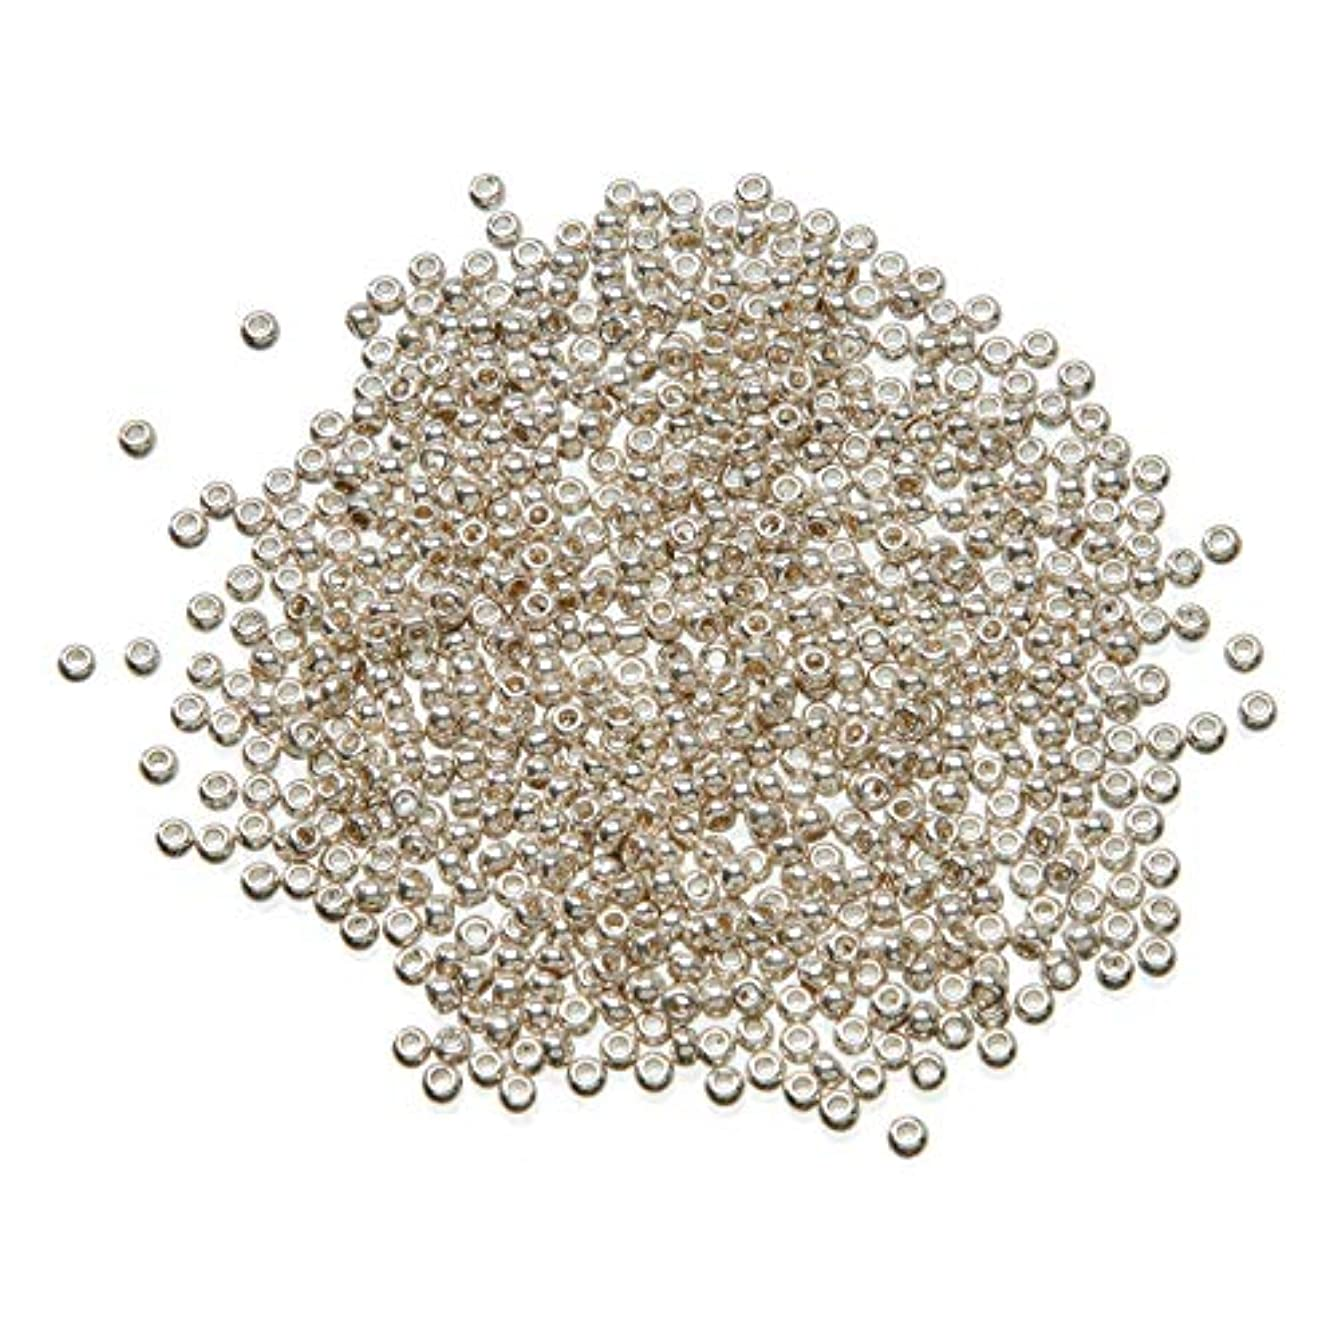 Bulk Buy: Darice DIY Crafts Toho Japanese Glass Seed Beads Galvanized Silver 11/0 2.2mm (3-Pack) 1951-49